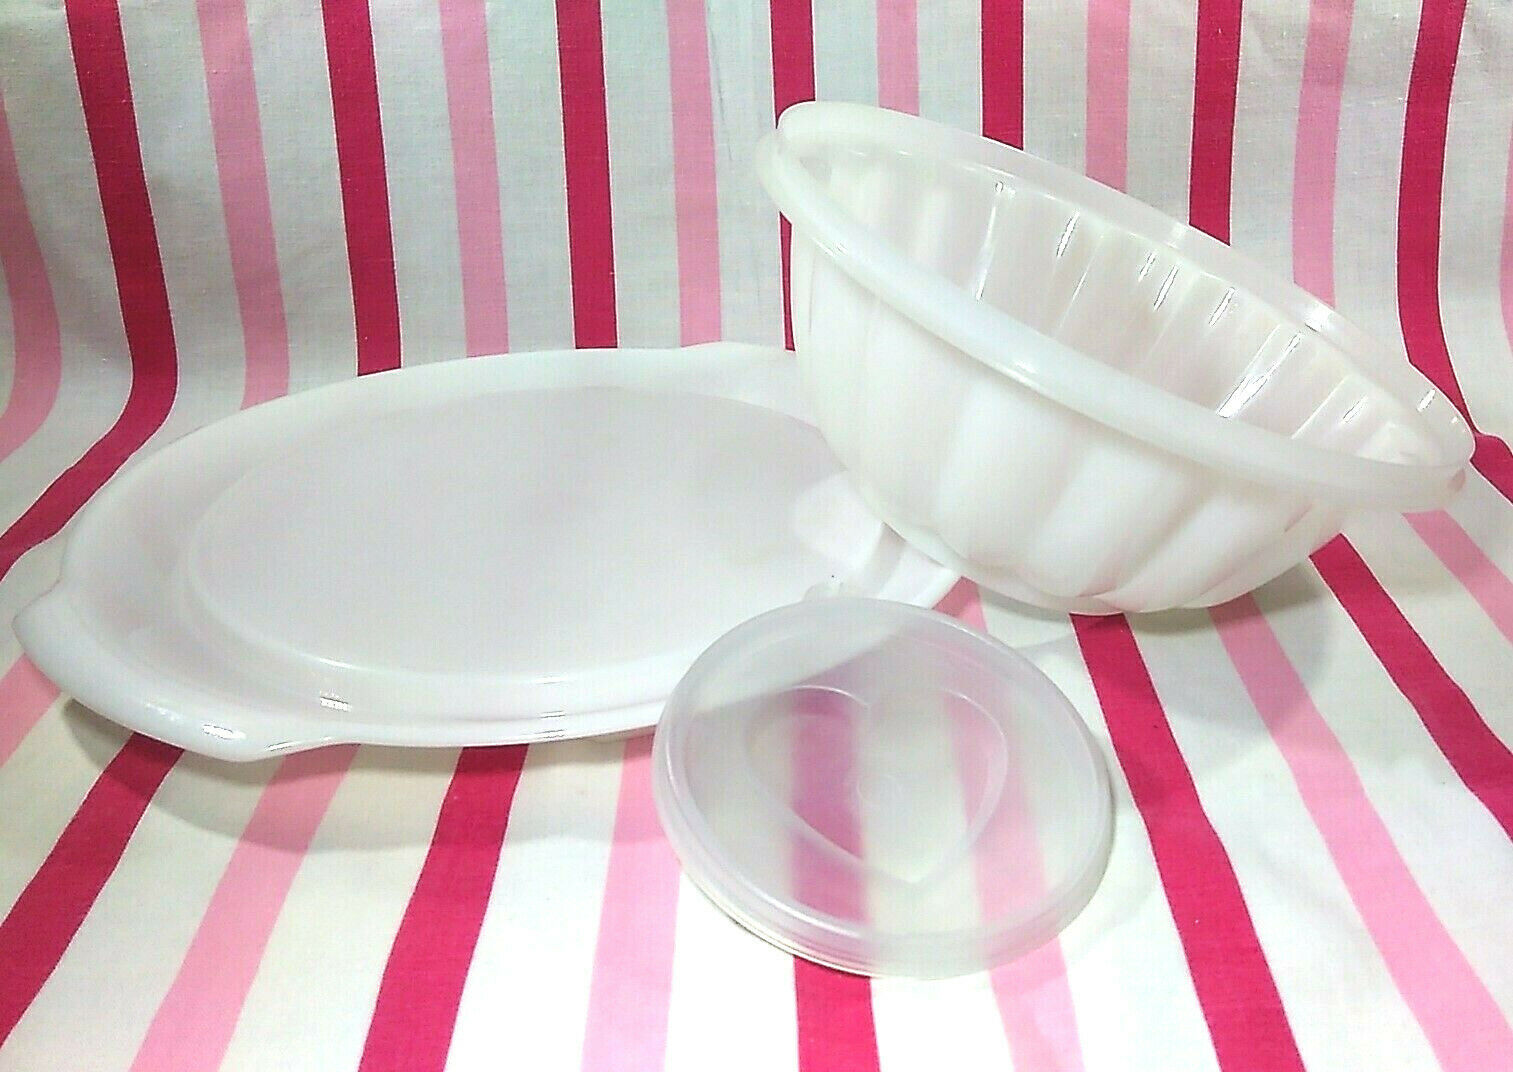 FUN Vintage Tupperware Jel-N-Serve Mold With White Tray and Heart Design Top